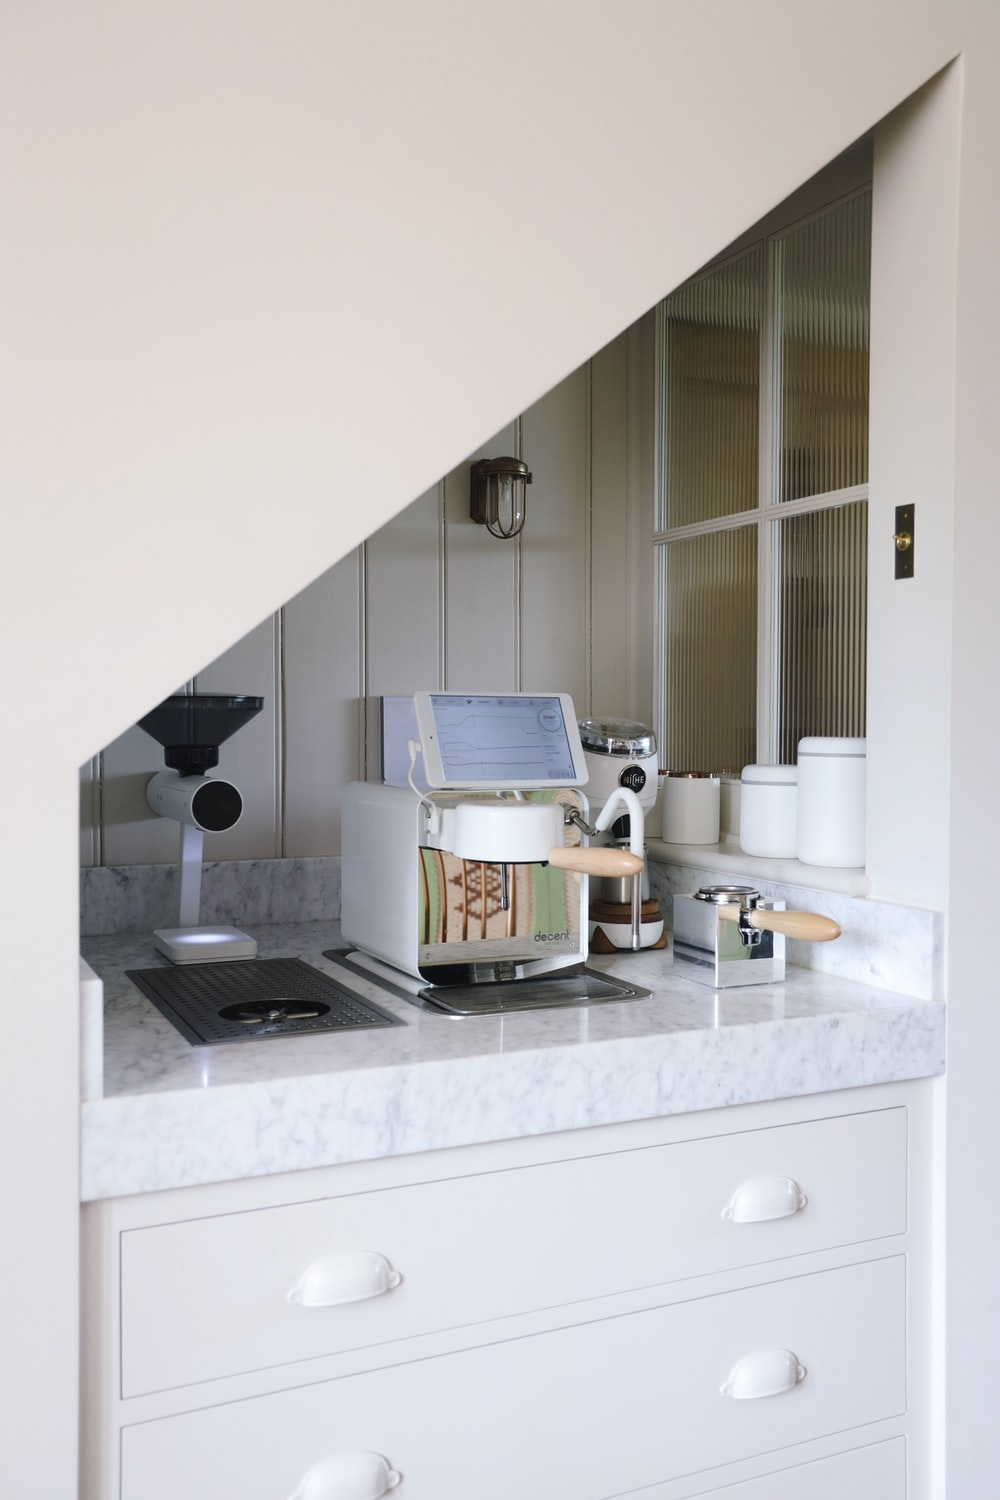 white and black microwave oven on white wooden kitchen cabinet